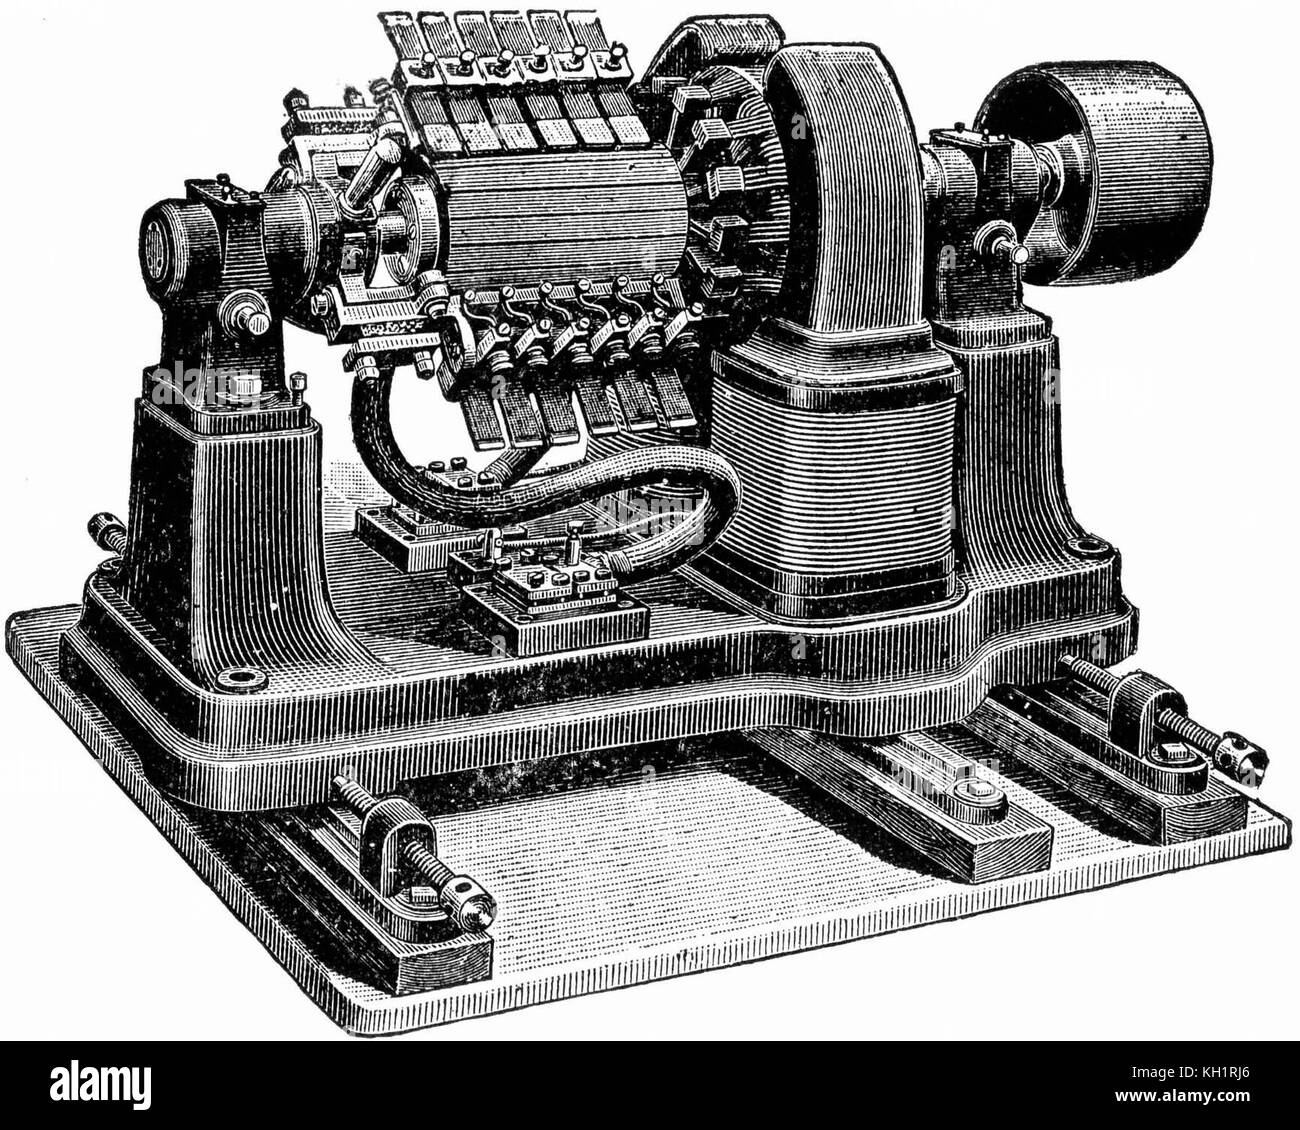 This large belt-driven high-current dynamo from around 1917 produced 310 amperes at 7 volts DC. The huge complicated - Stock Image